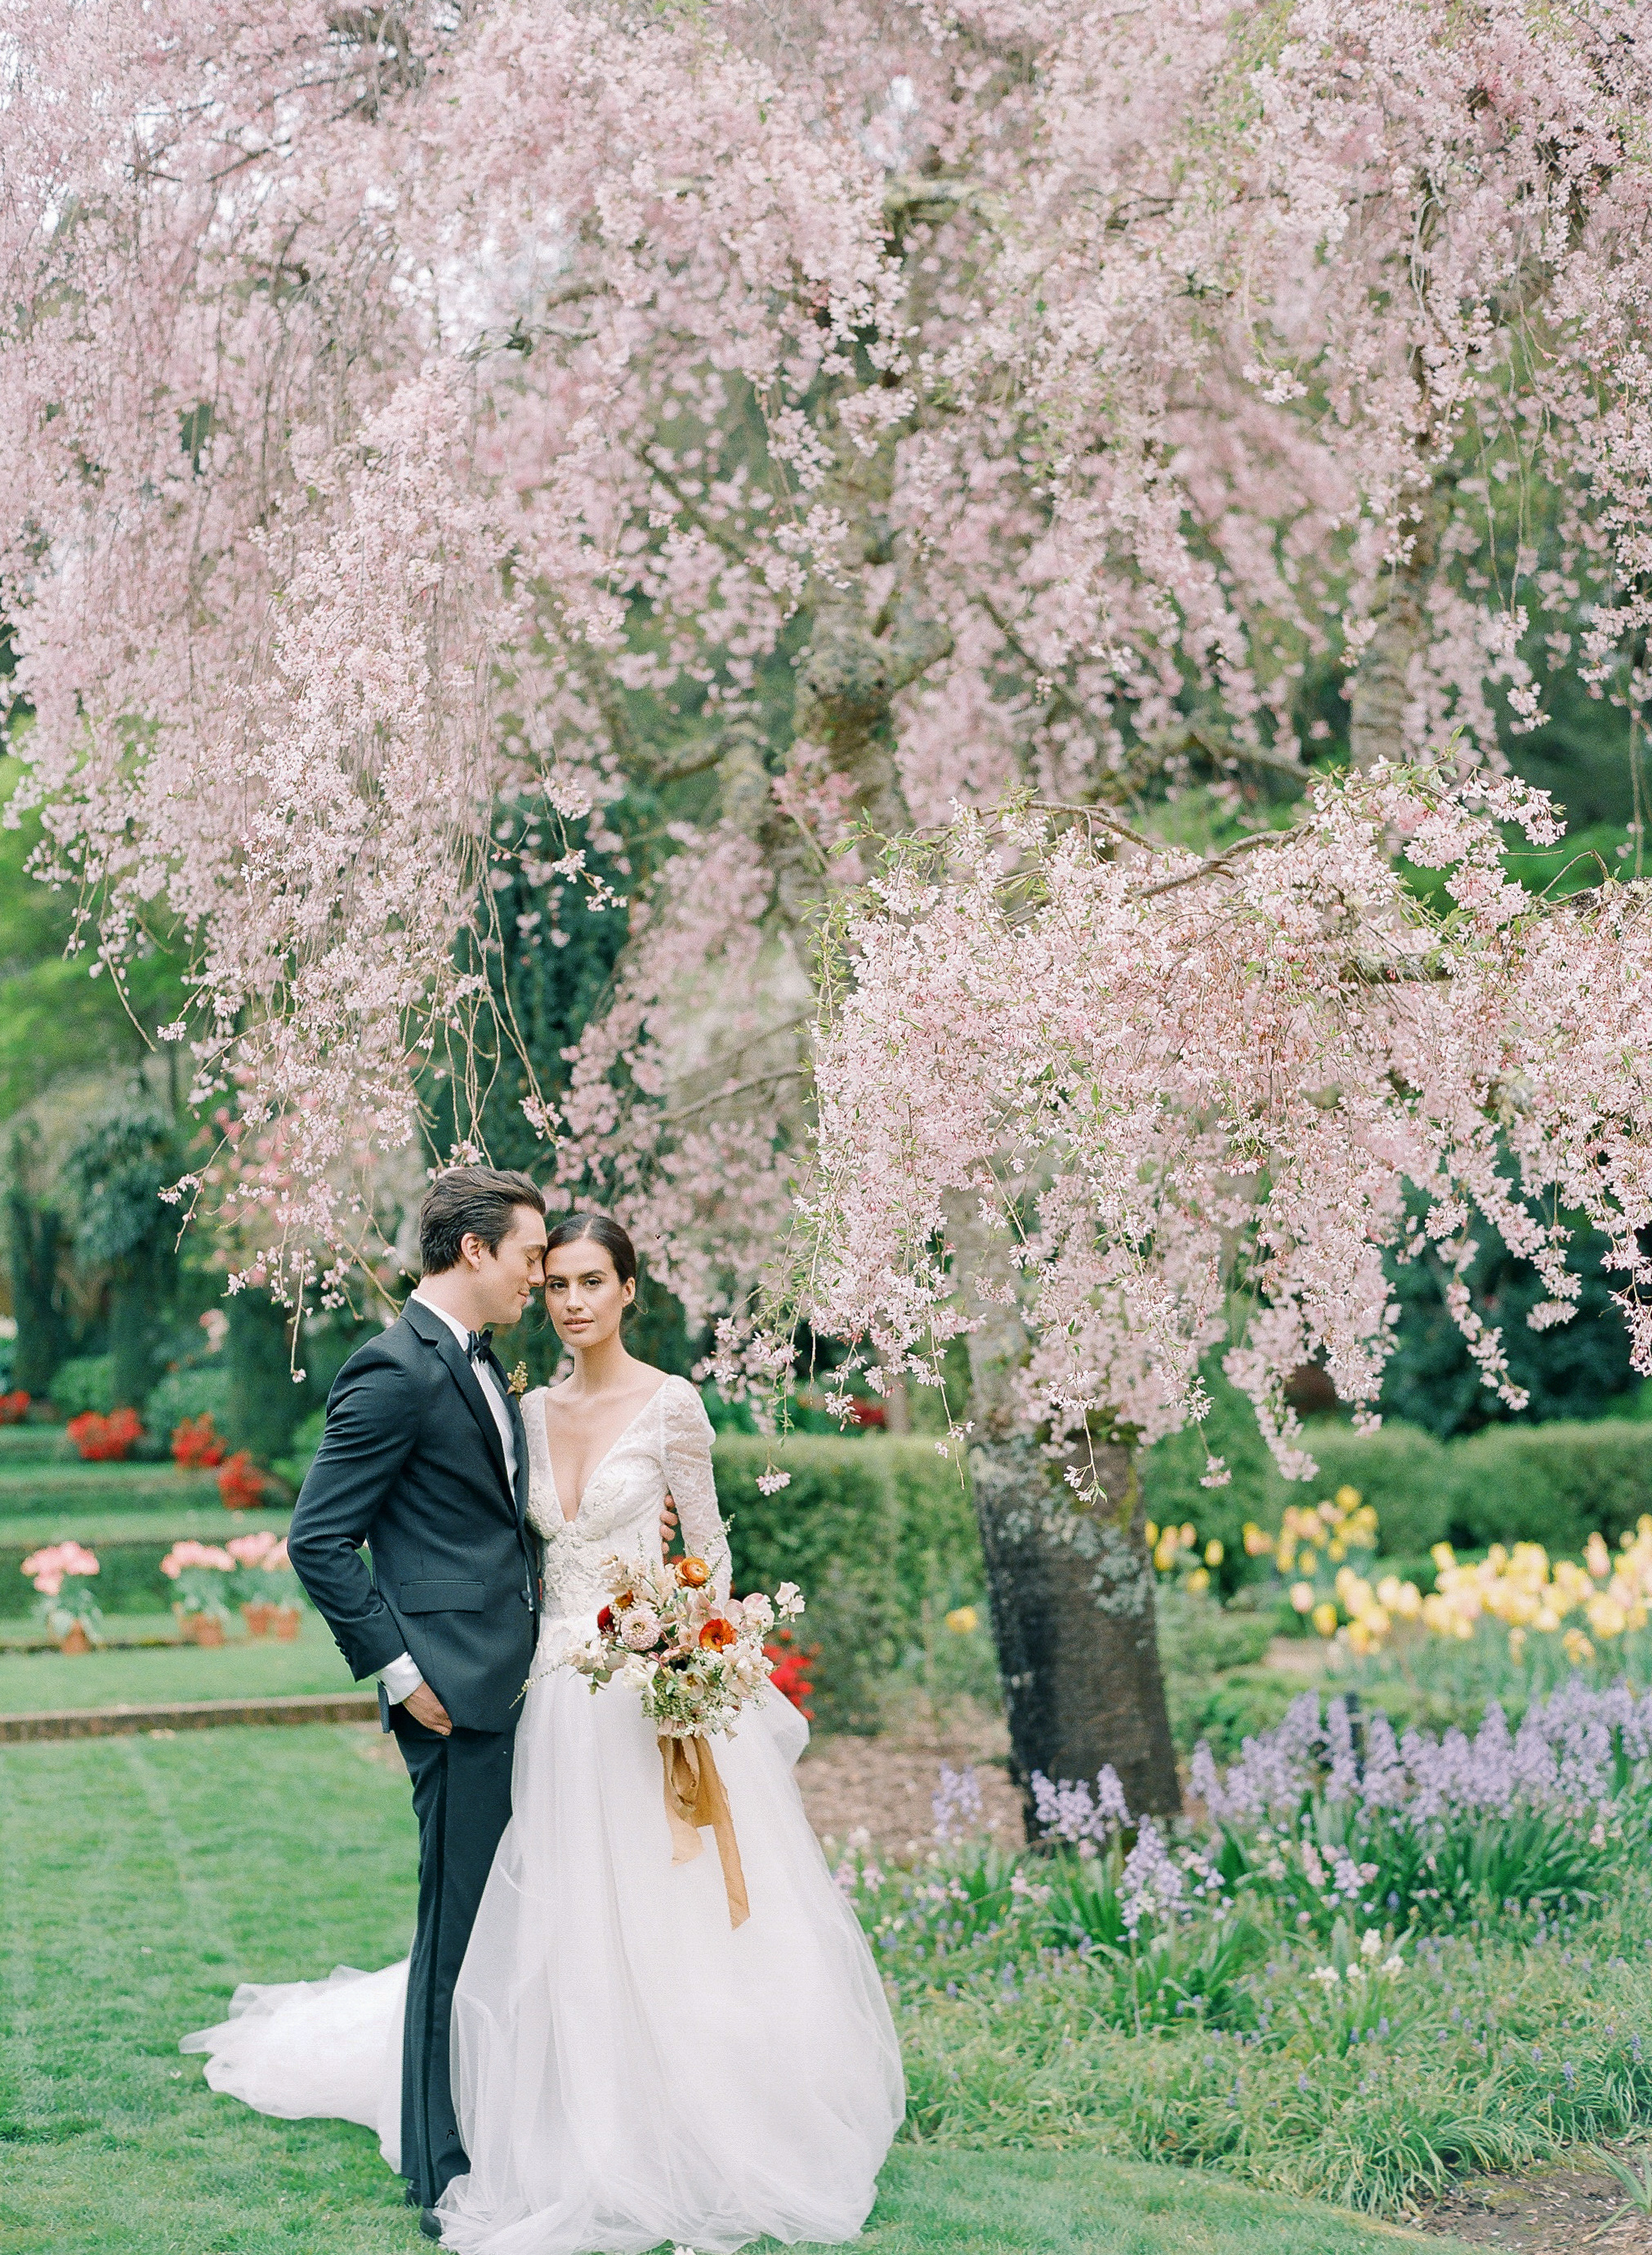 Filoli | Filoli Garden | Wedding | Amanda Crean Photography | Bustle Events |